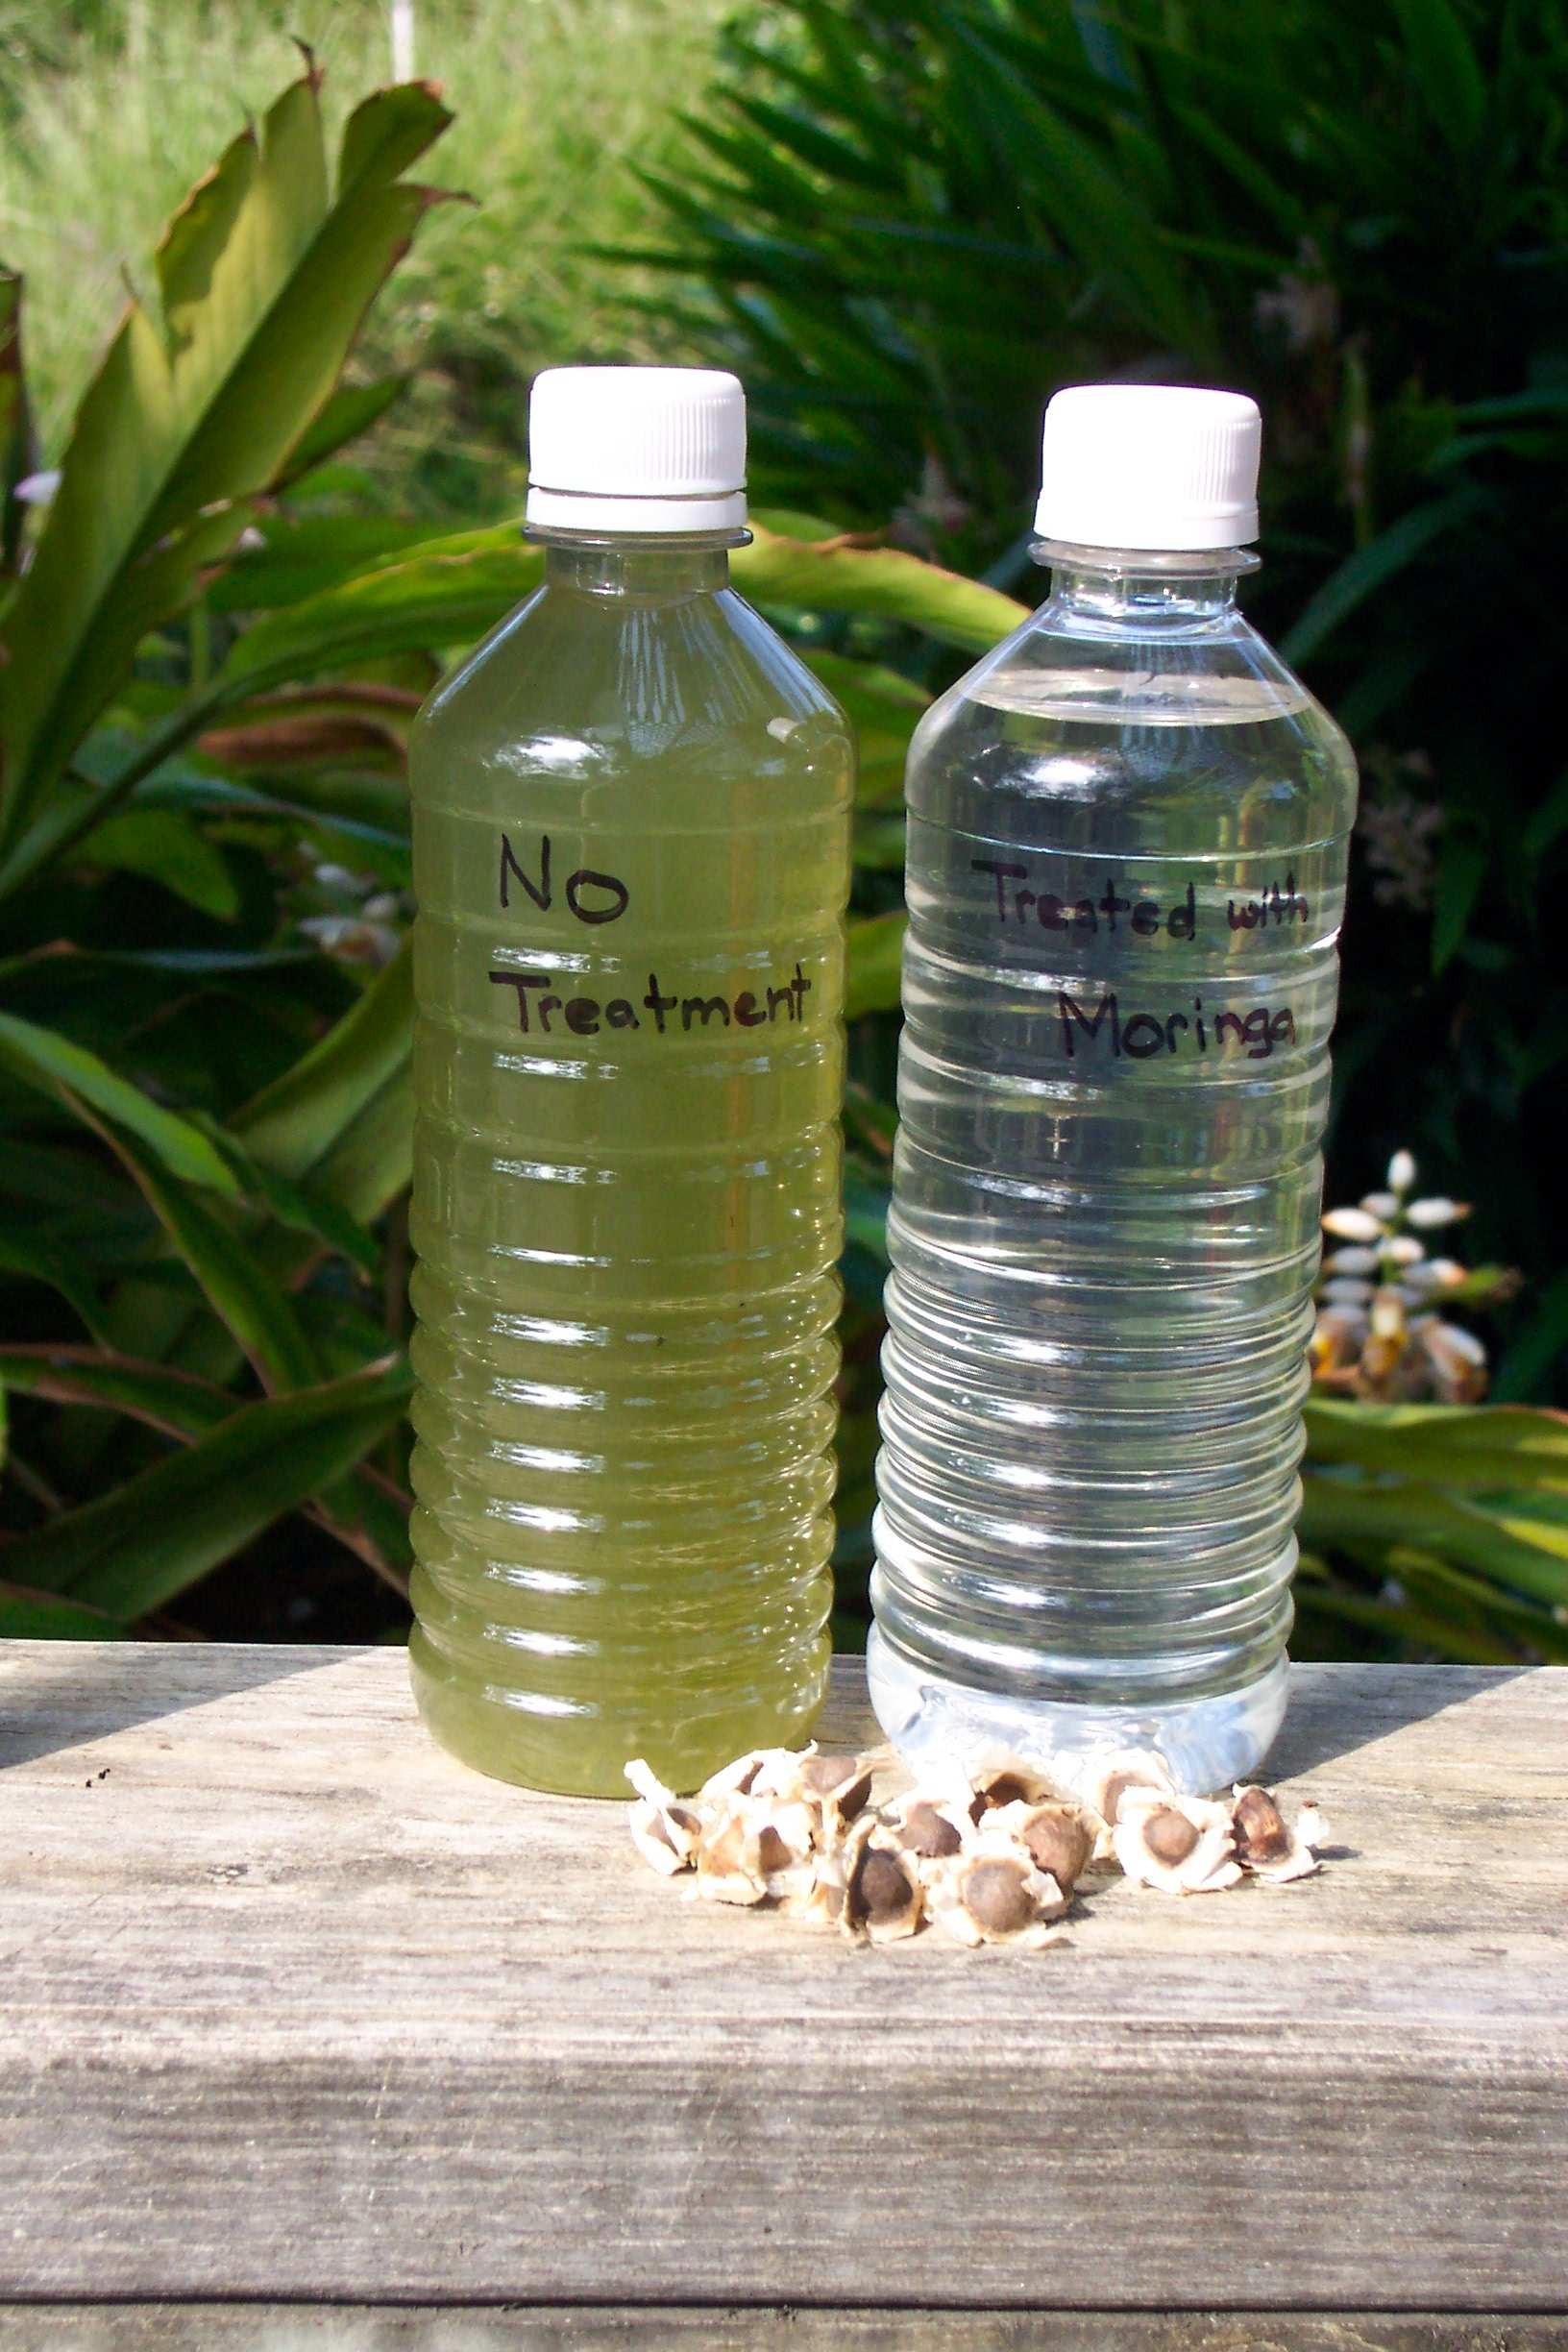 Figure 2: On the left is a bottle containing turbid water. On the right is a bottle containing water from the same source that has been clarified using moringa seeds.